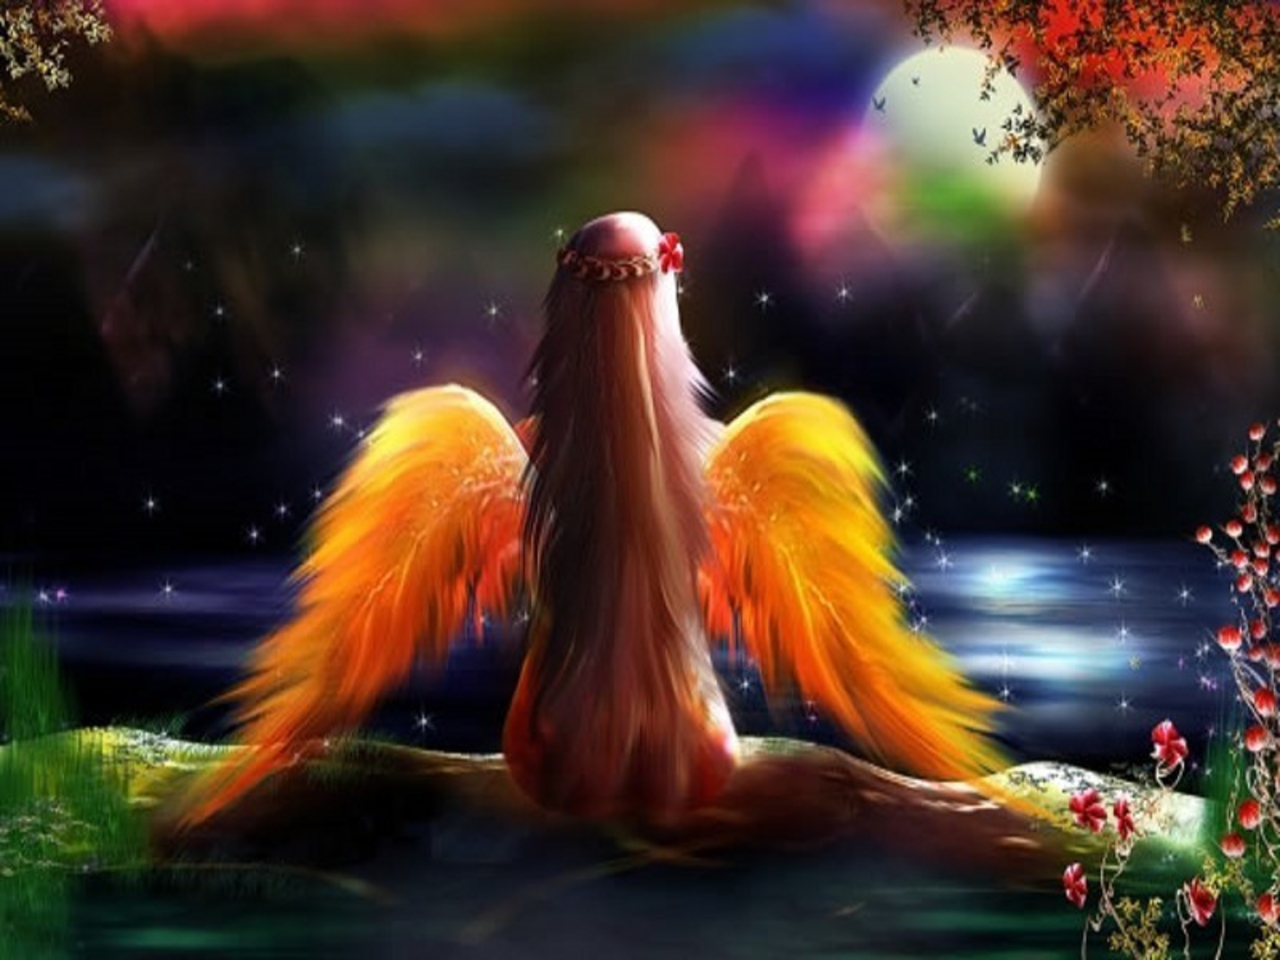 Colorful Fairy Computer Wallpapers Desktop Backgrounds 1280x960 1280x960